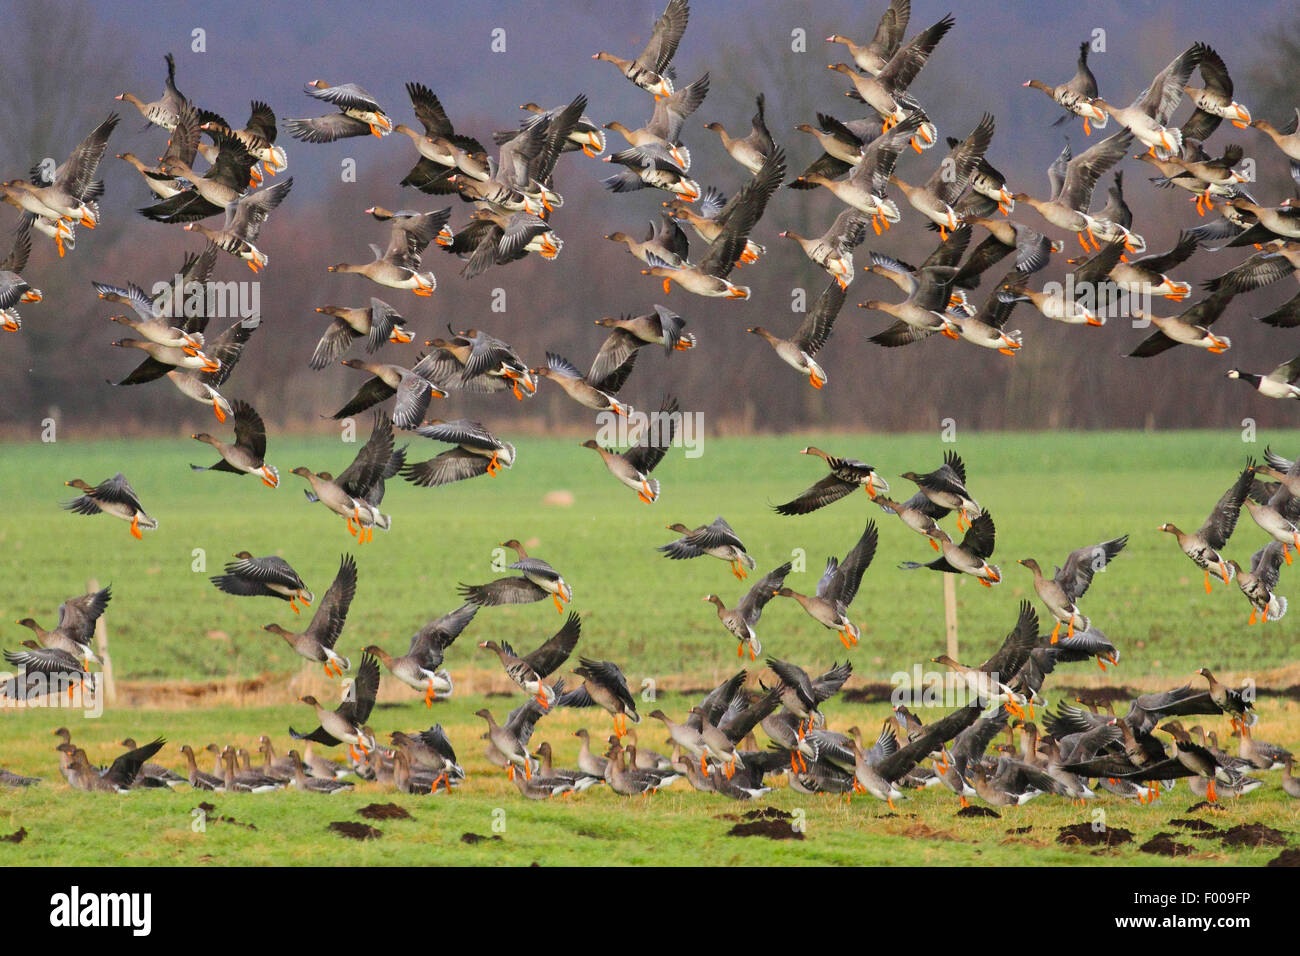 Bean Goose, Taiga Bean Goose (Anser fabalis), flock of  bean geese and greater white-fronted geese flying up, Germany - Stock Image